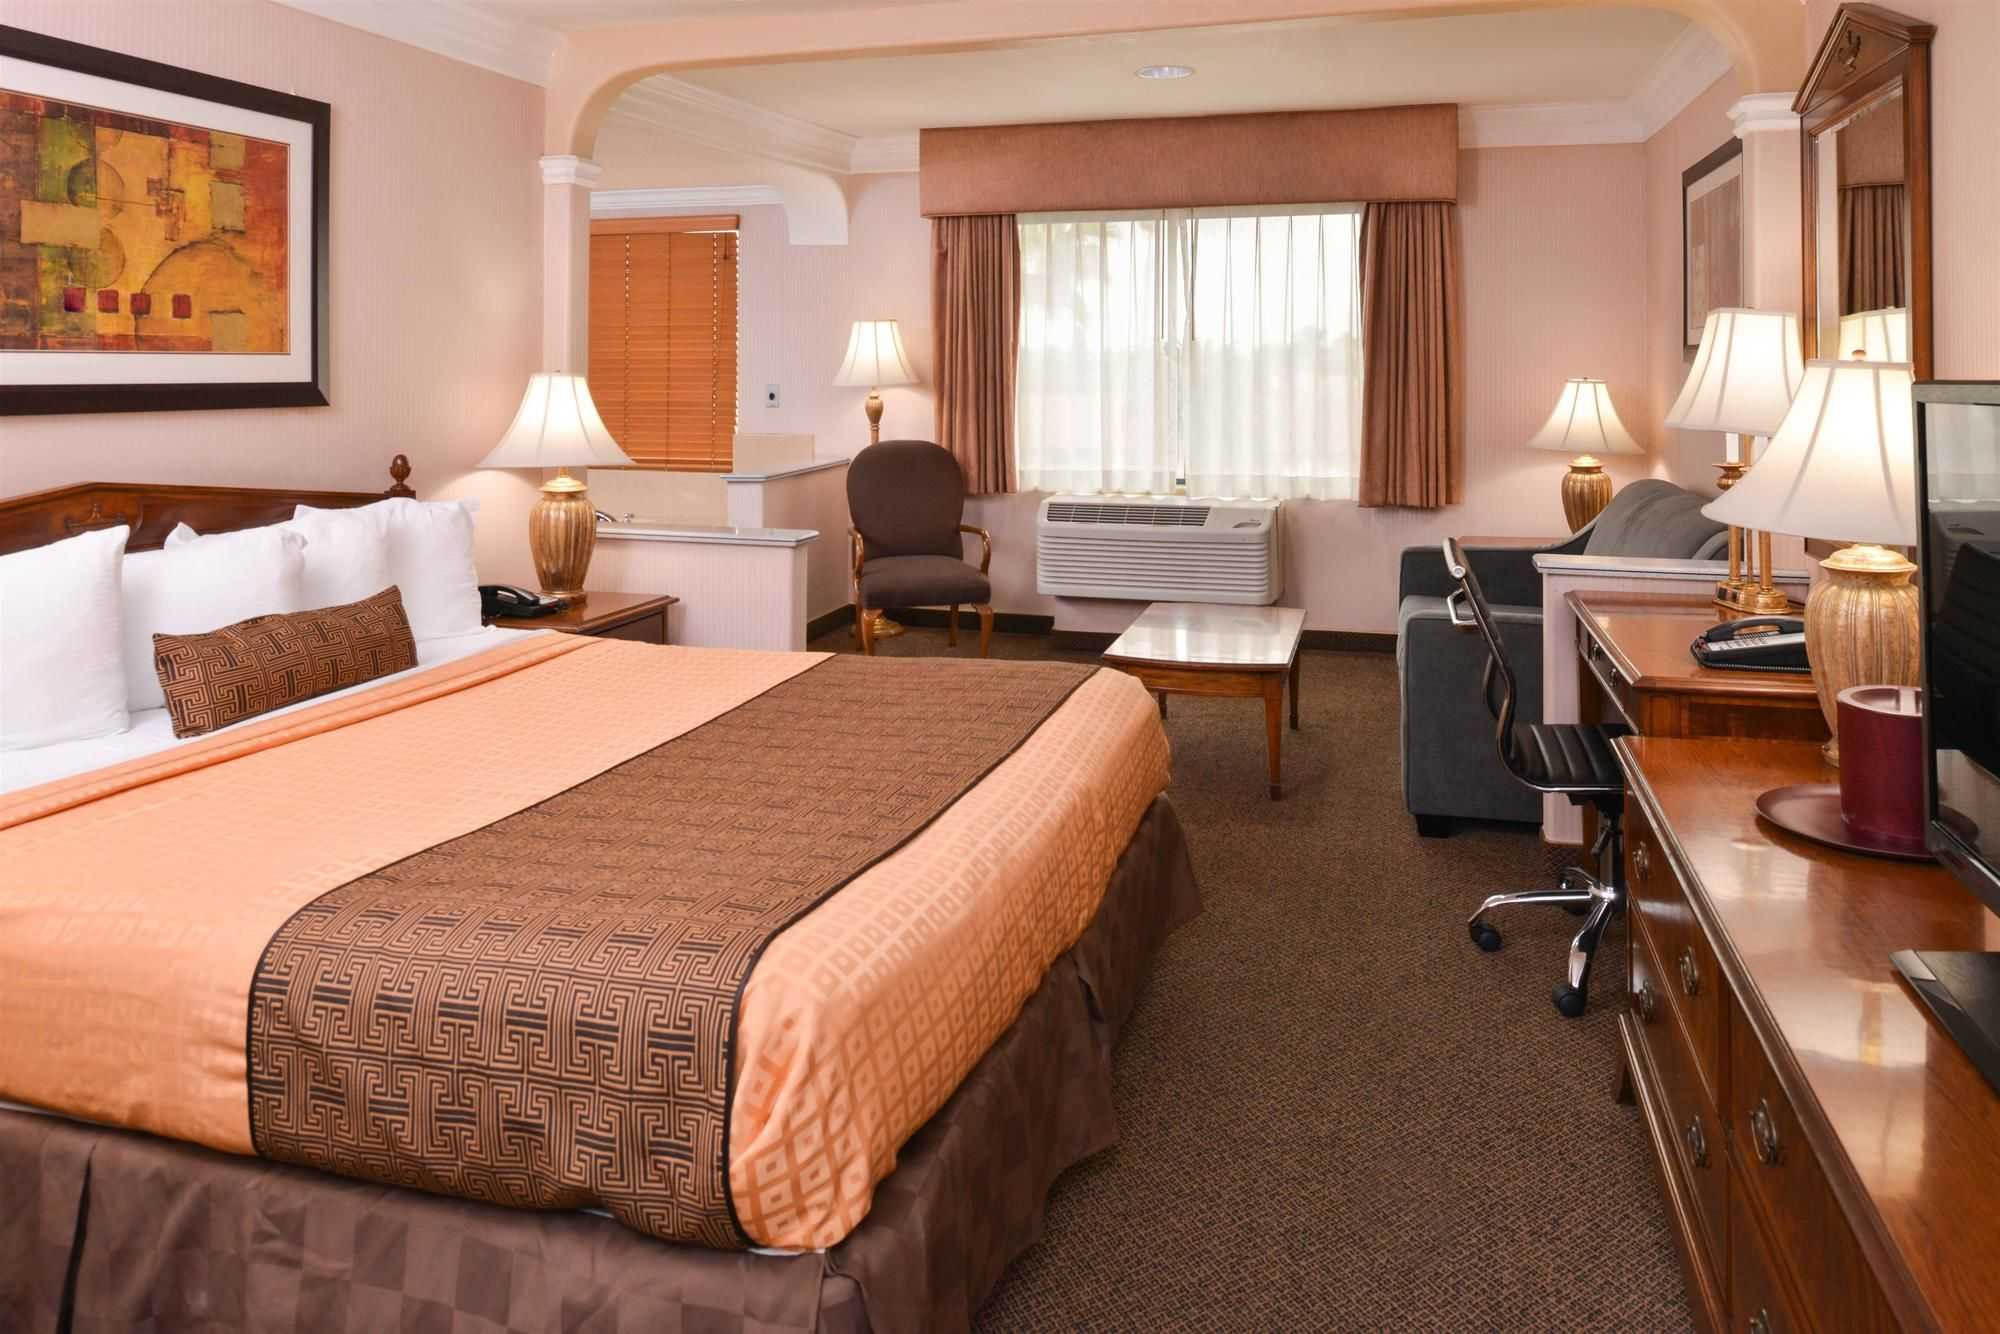 Los Angeles Hotel Coupons for Los Angeles, California ...